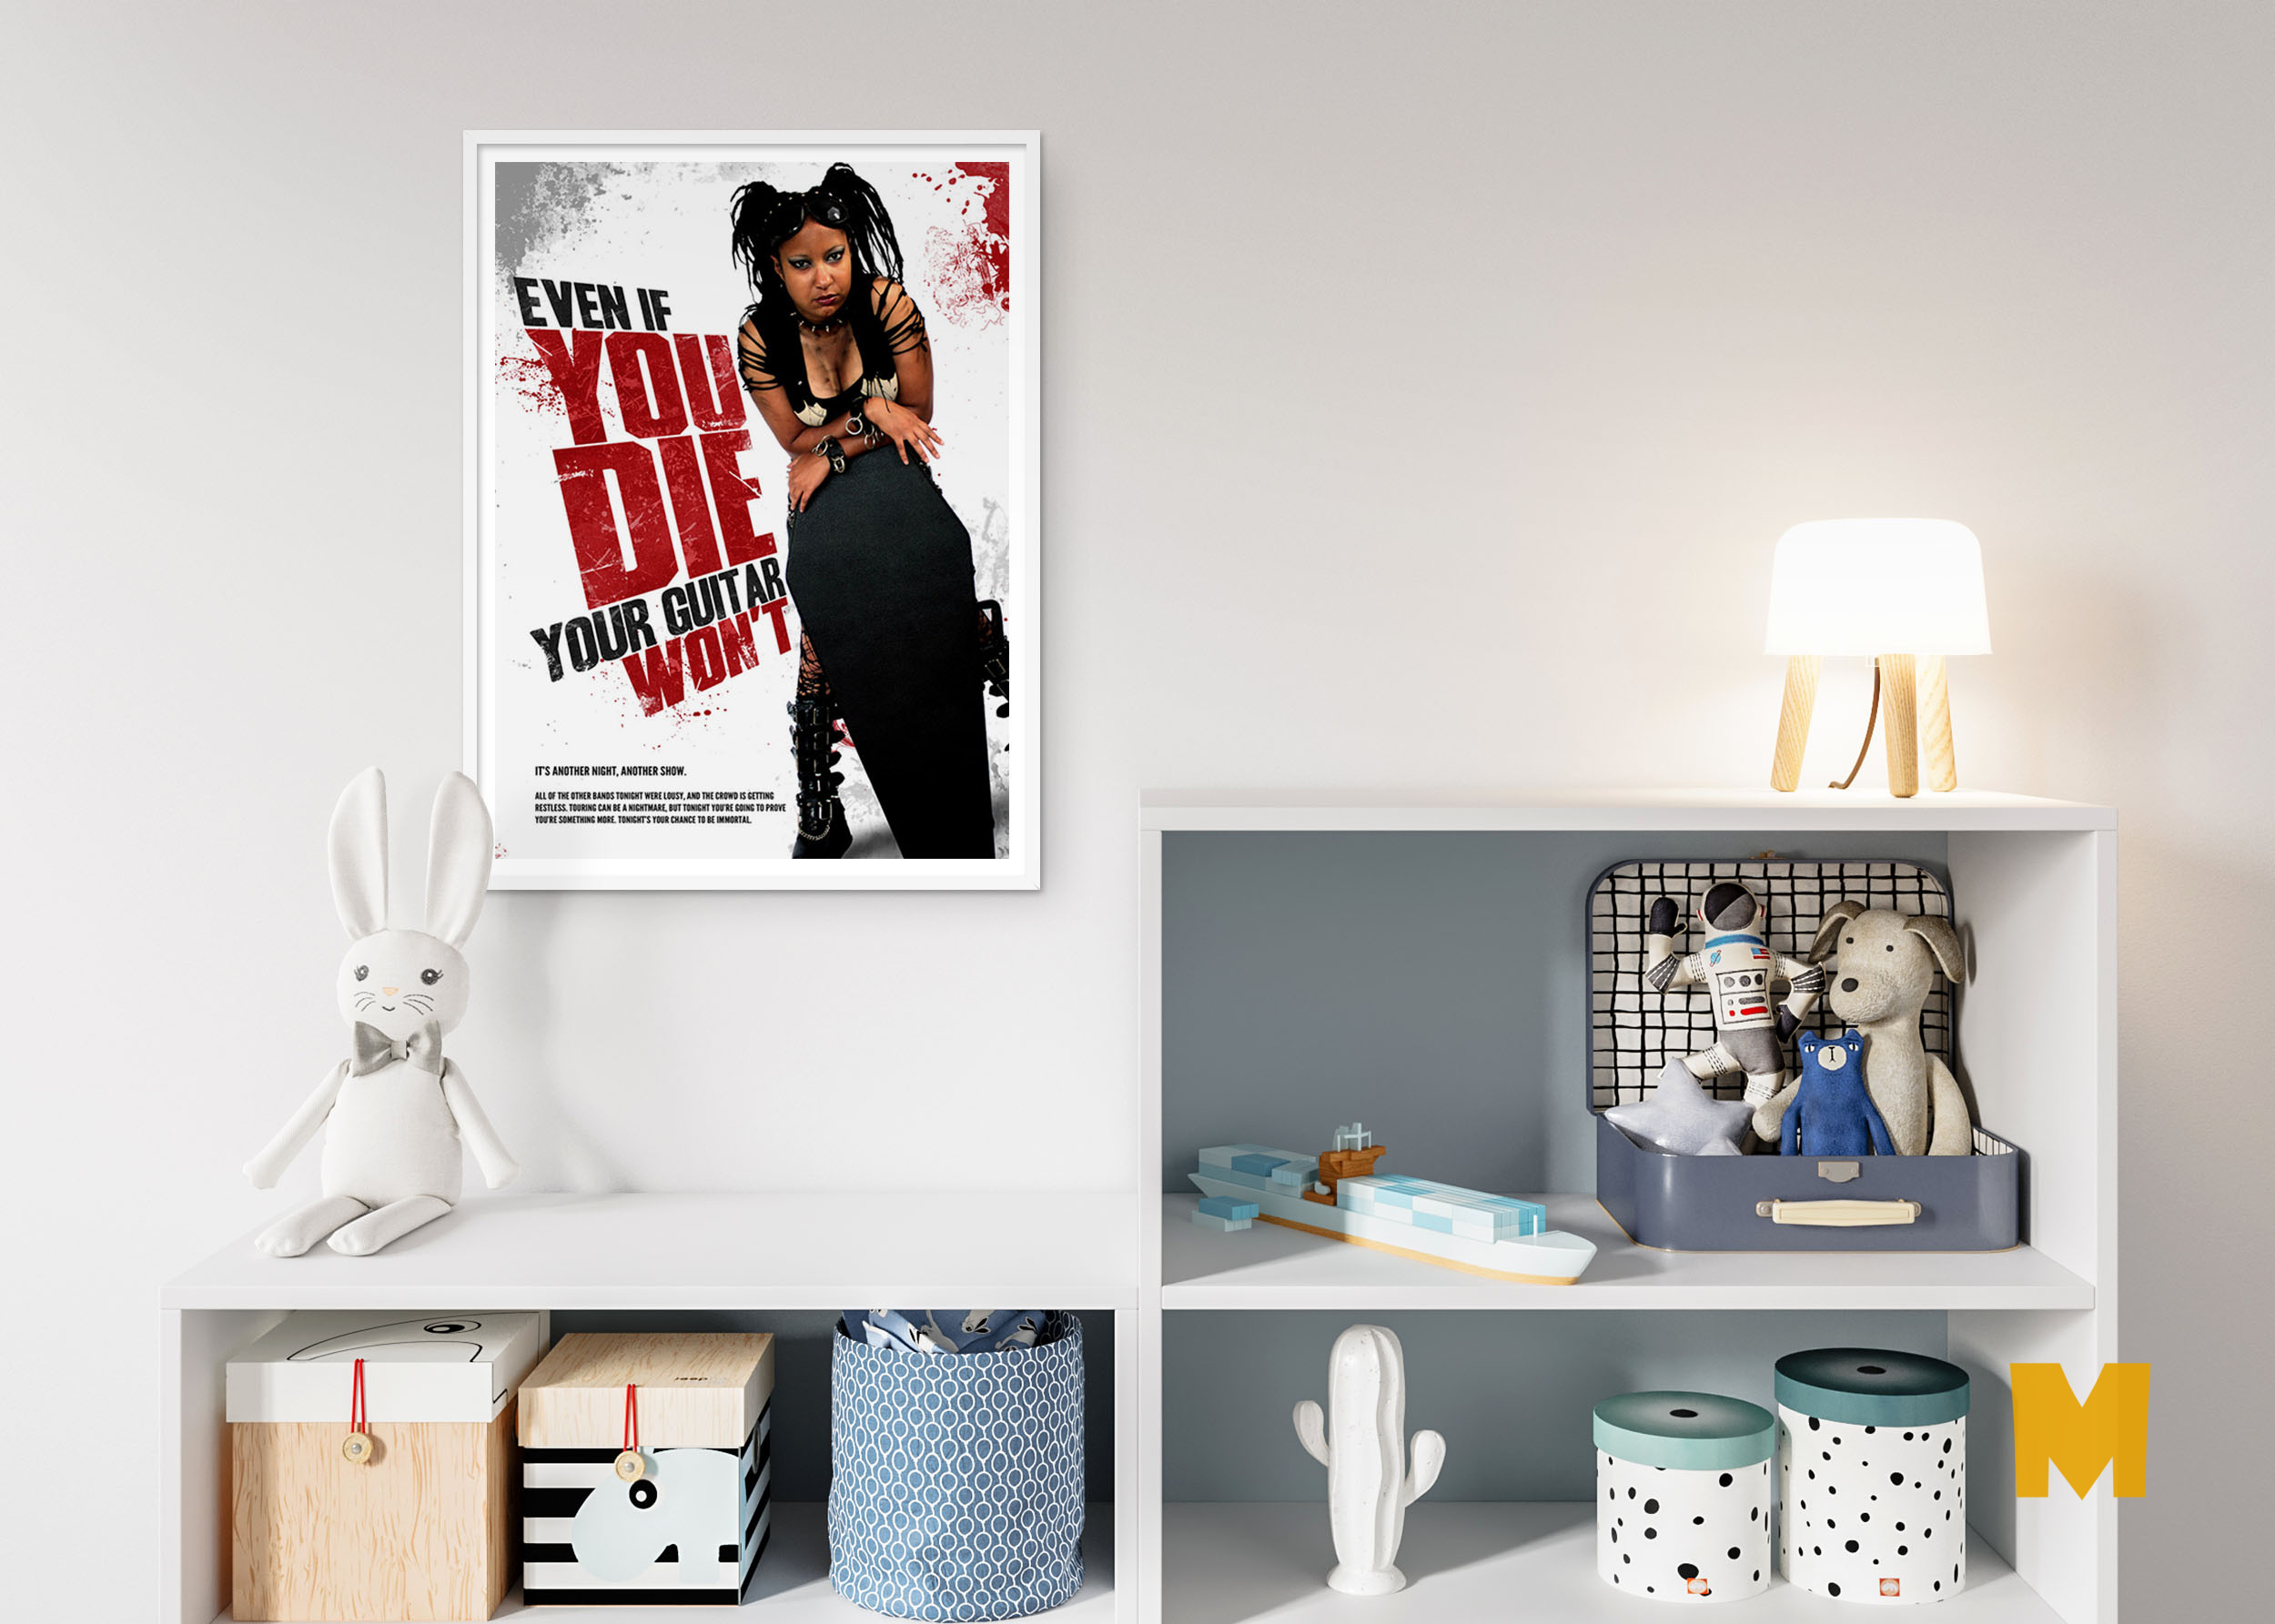 Free Living Room PSD Poster Mockup For Behance